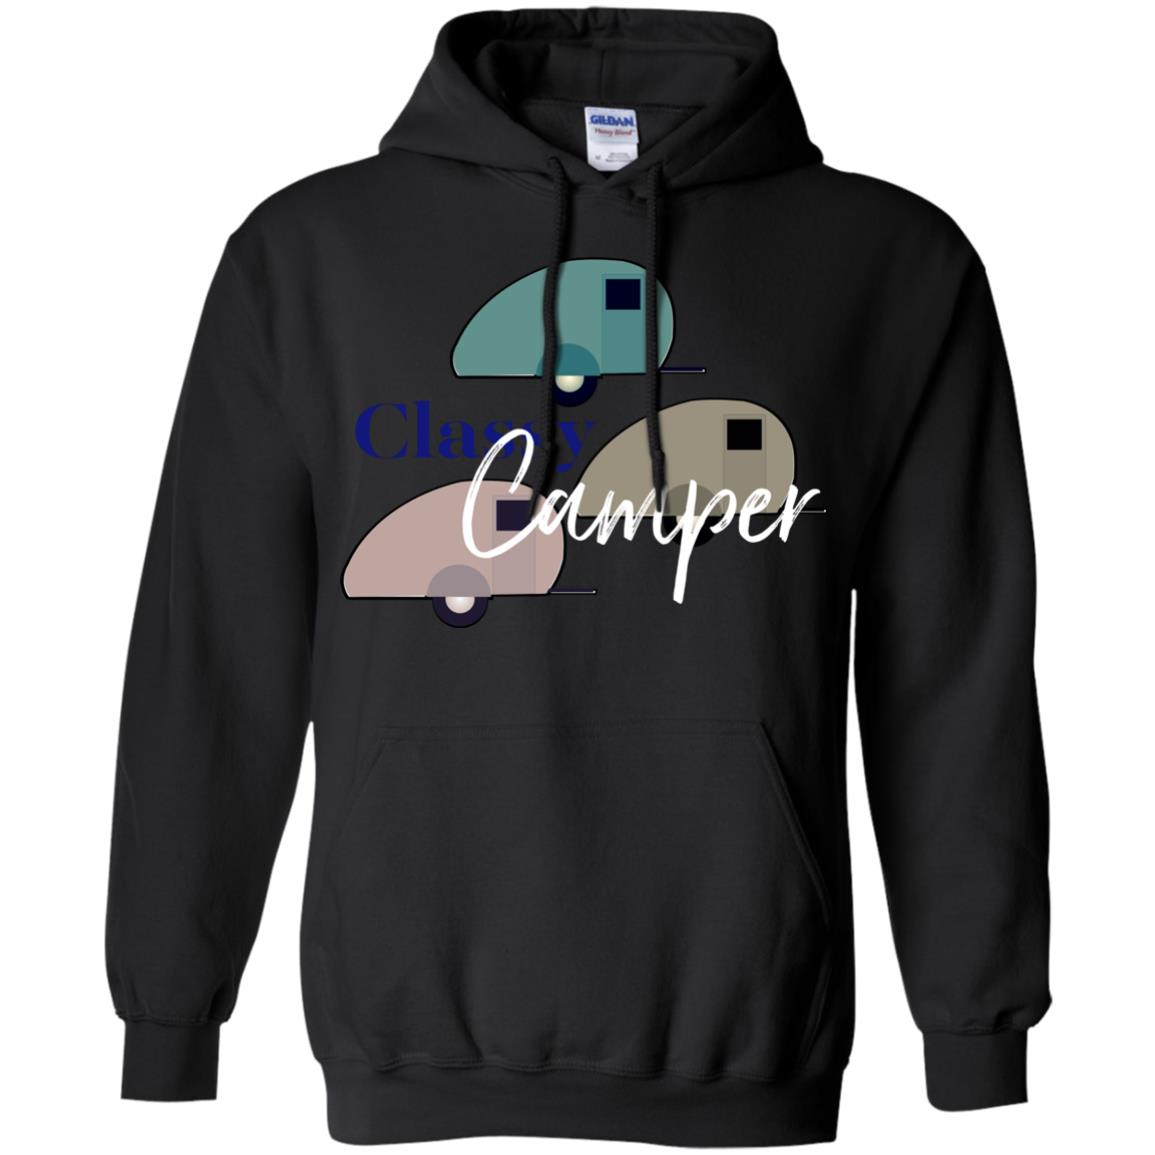 Classy Camper is a Happy Camper Glamping T Shirt